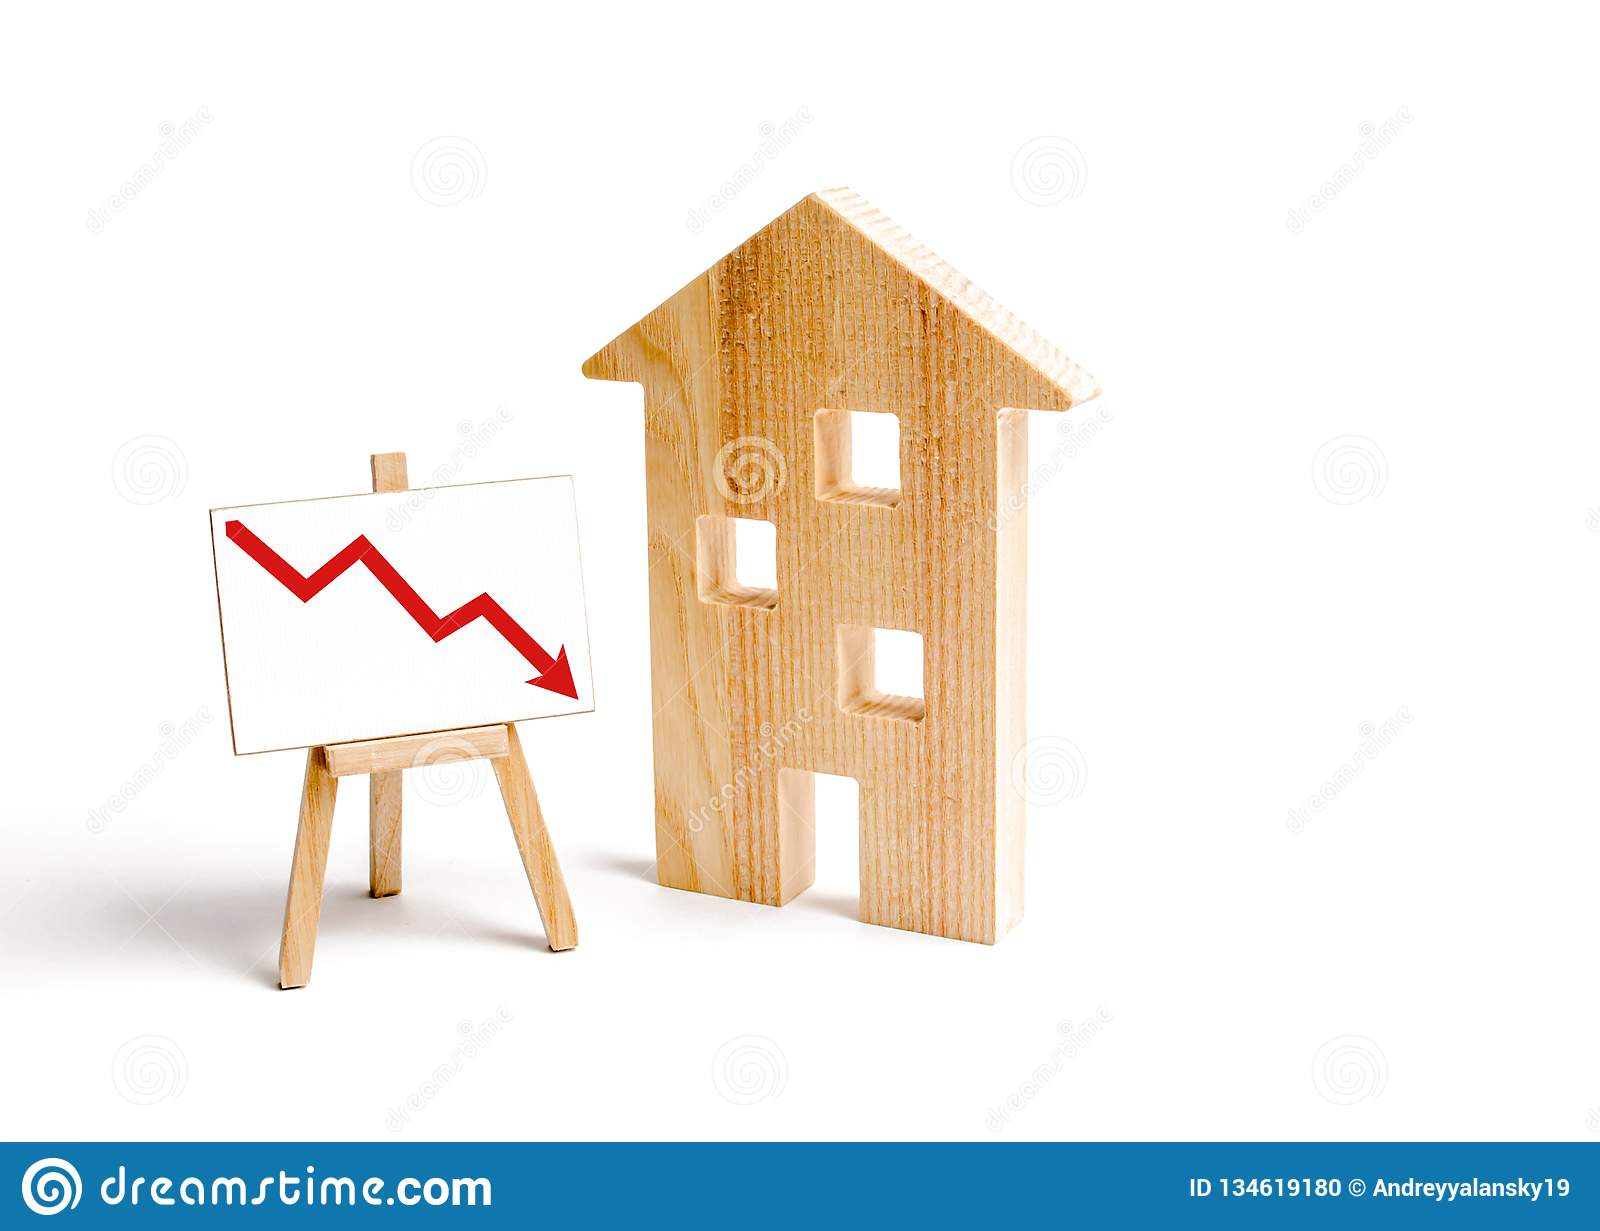 A Wooden house and red arrow down. concept of falling prices and demand for real estate, crisis and recession